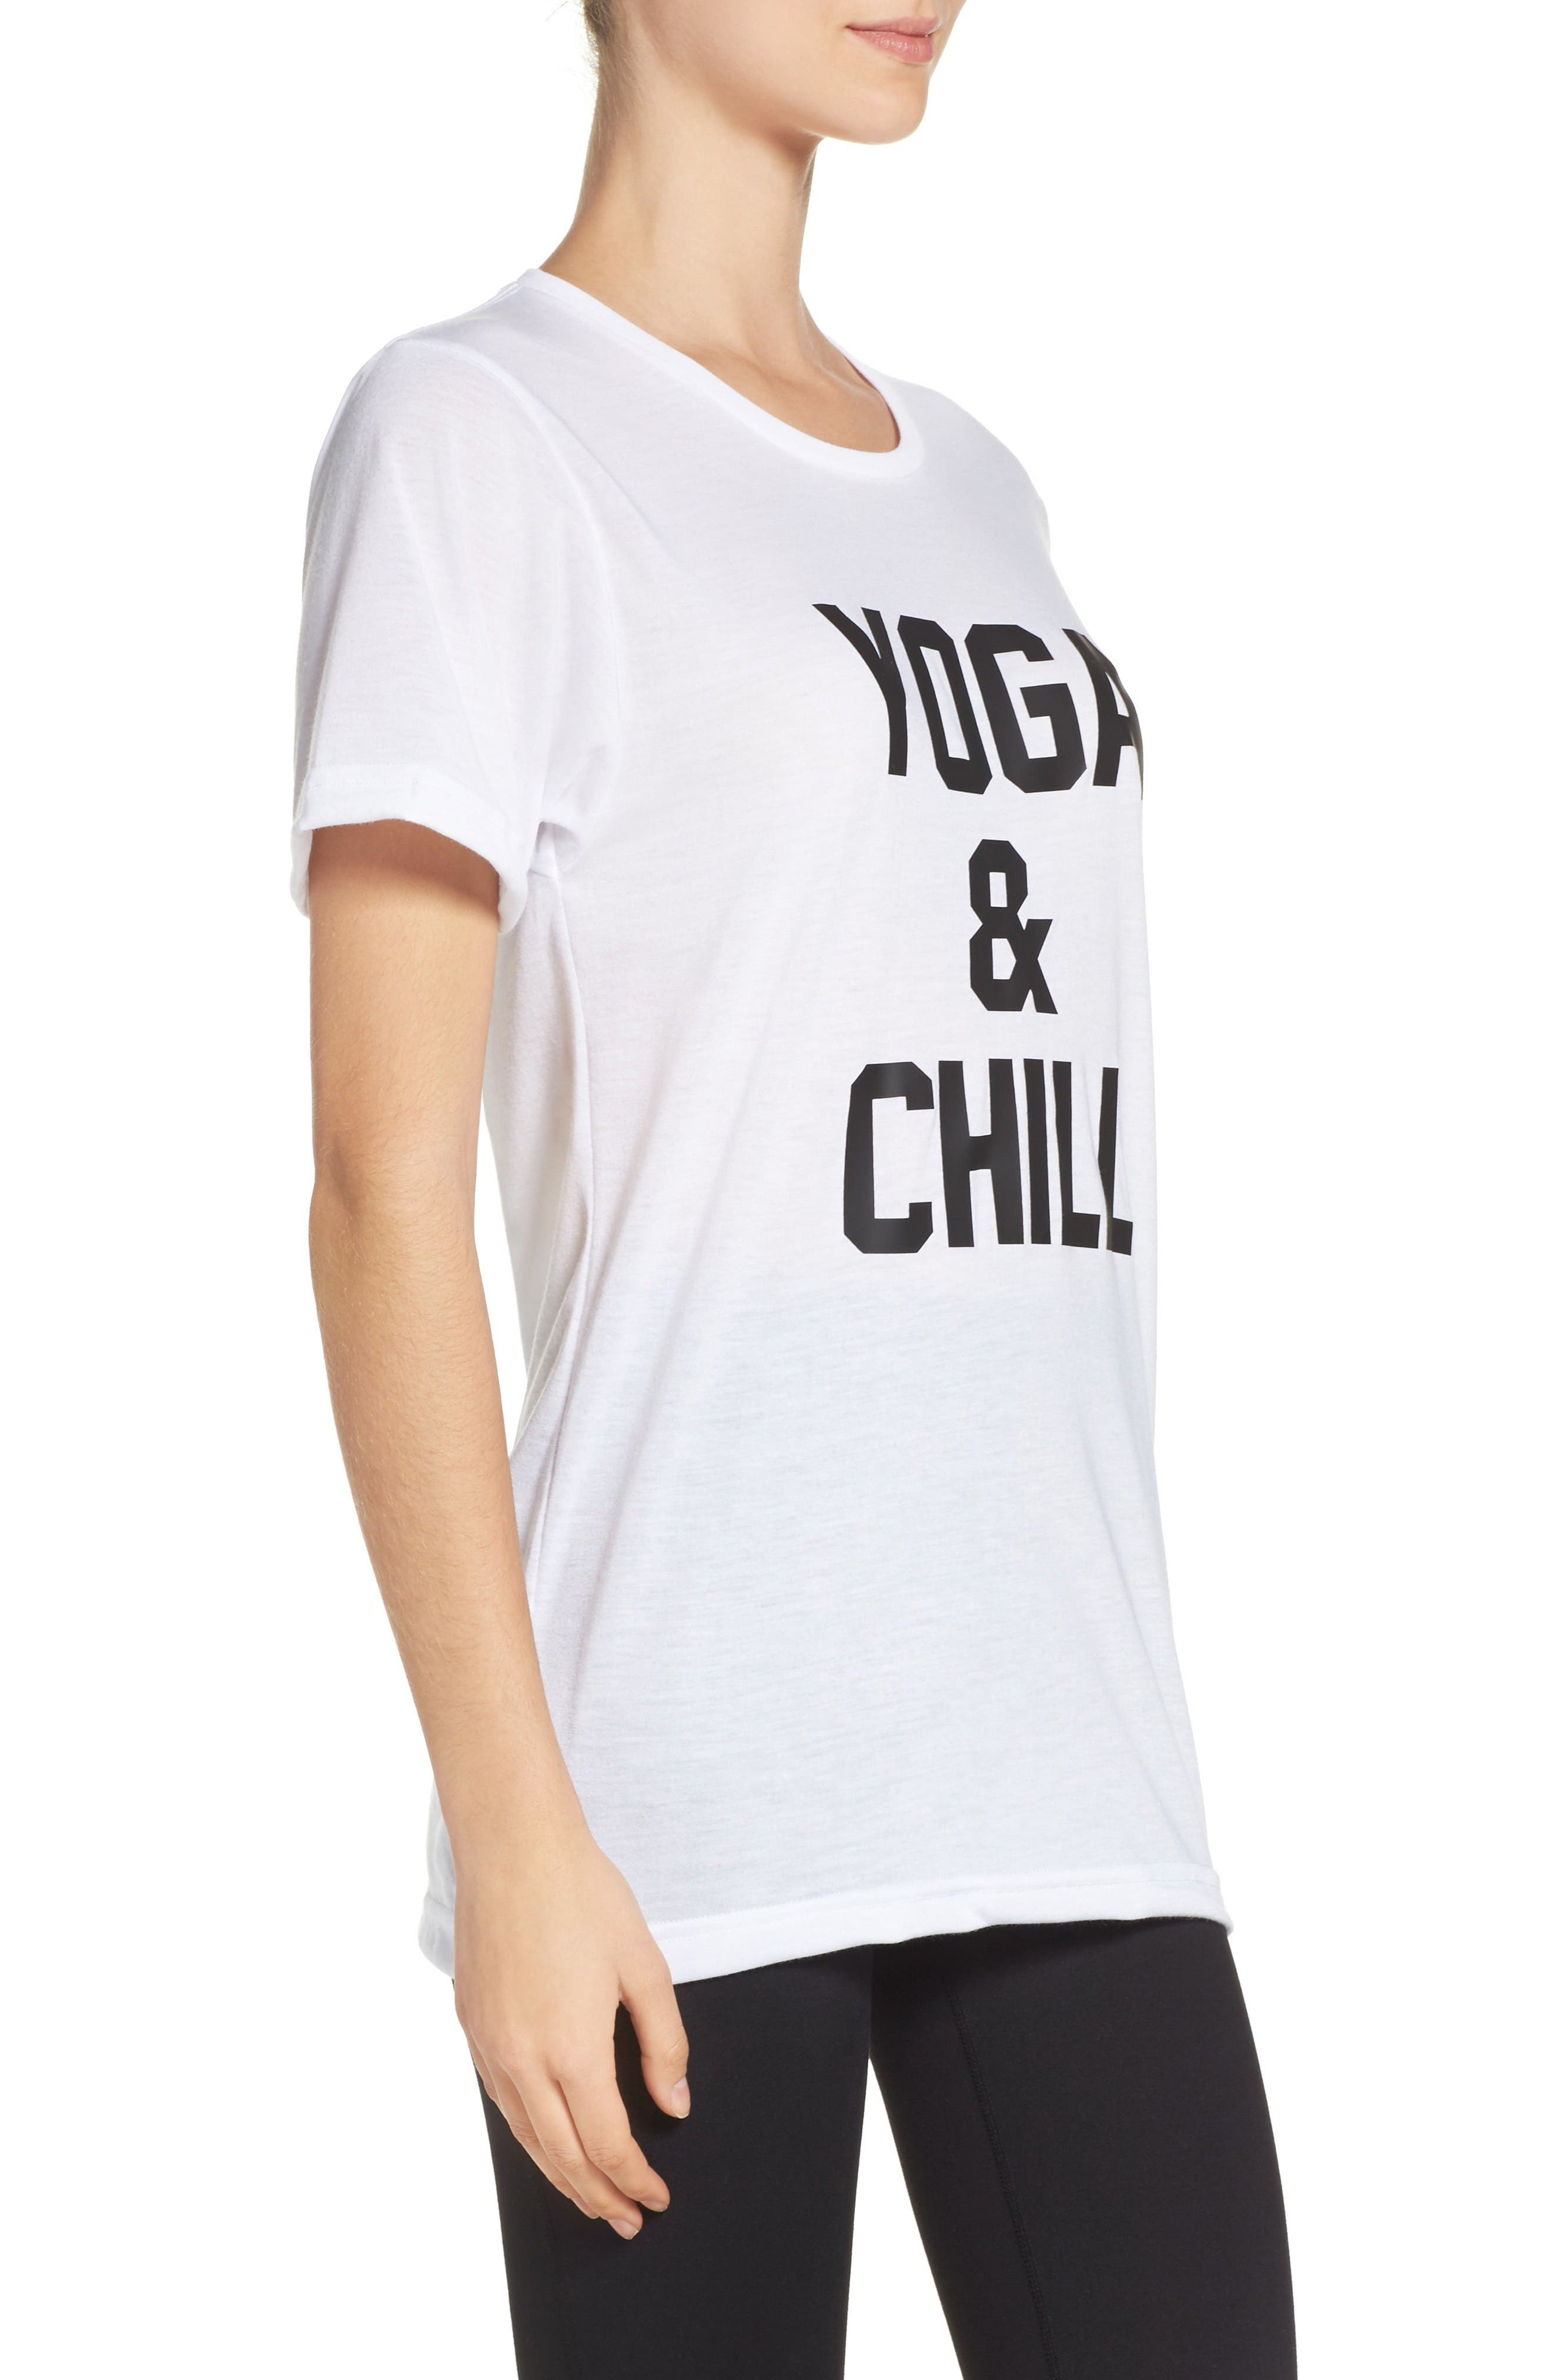 Alternate Image 3  - Private Party Yoga & Chill Tee